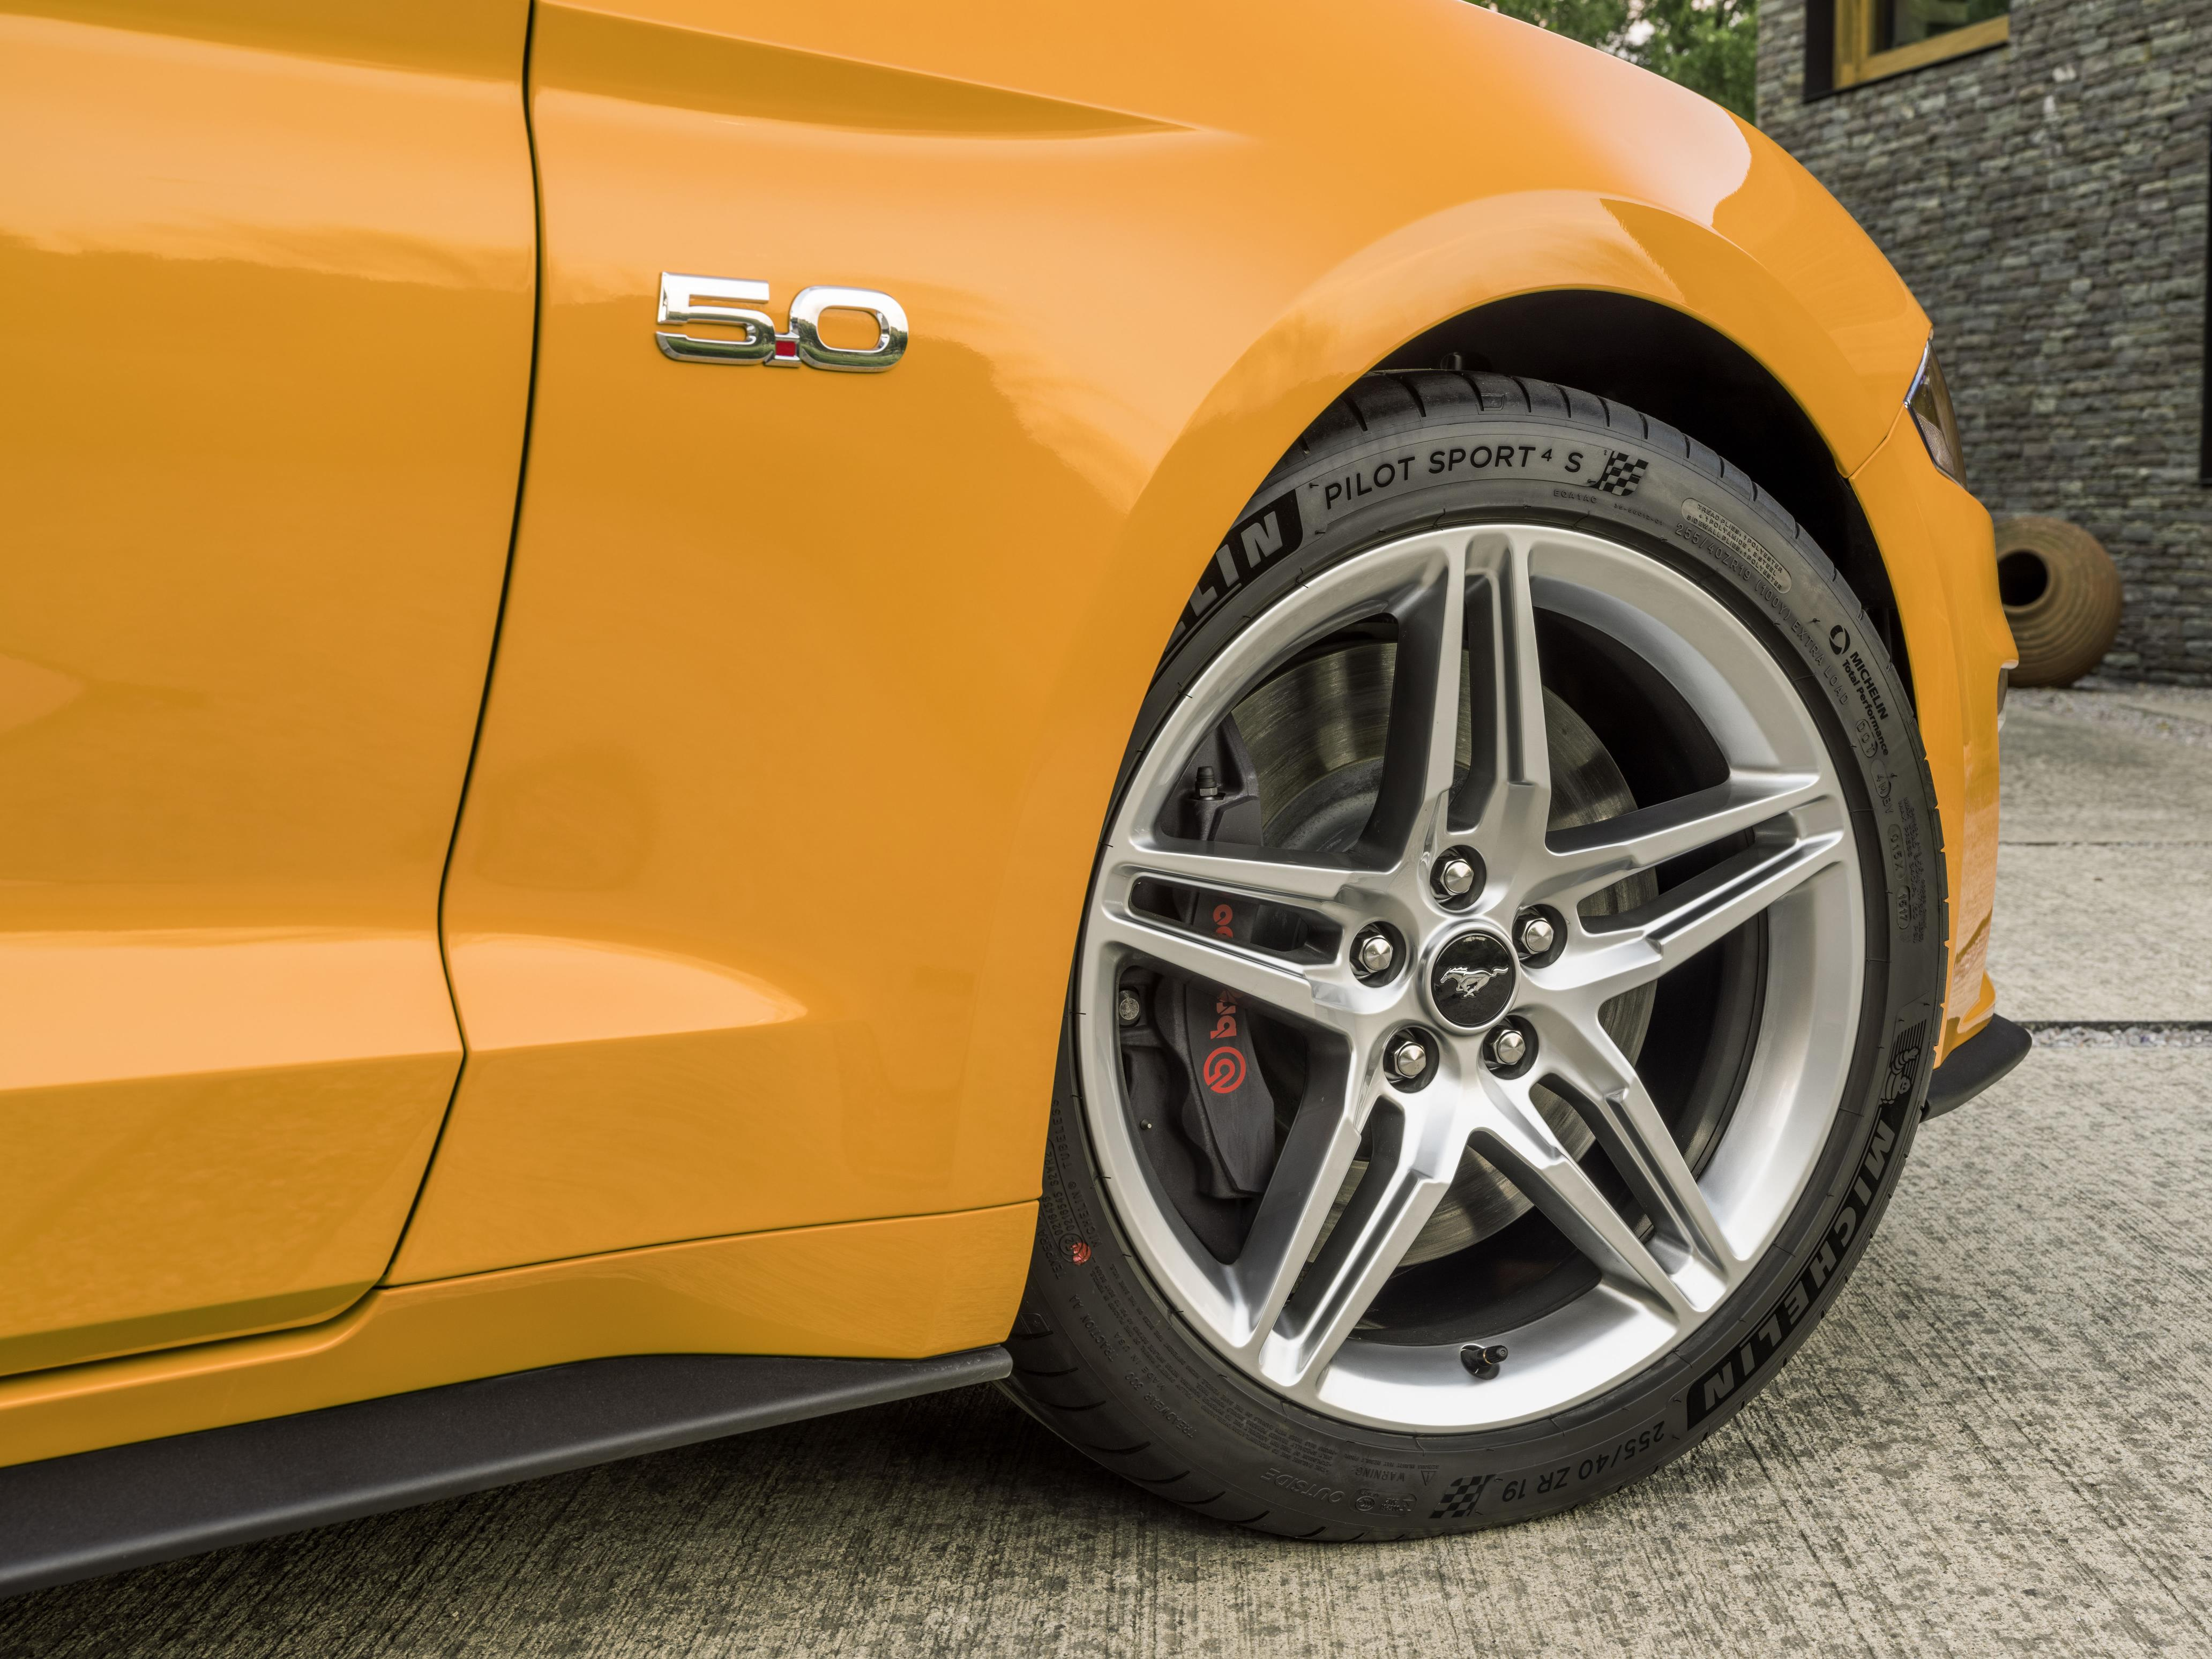 Large alloy wheels mean more expensive tyres